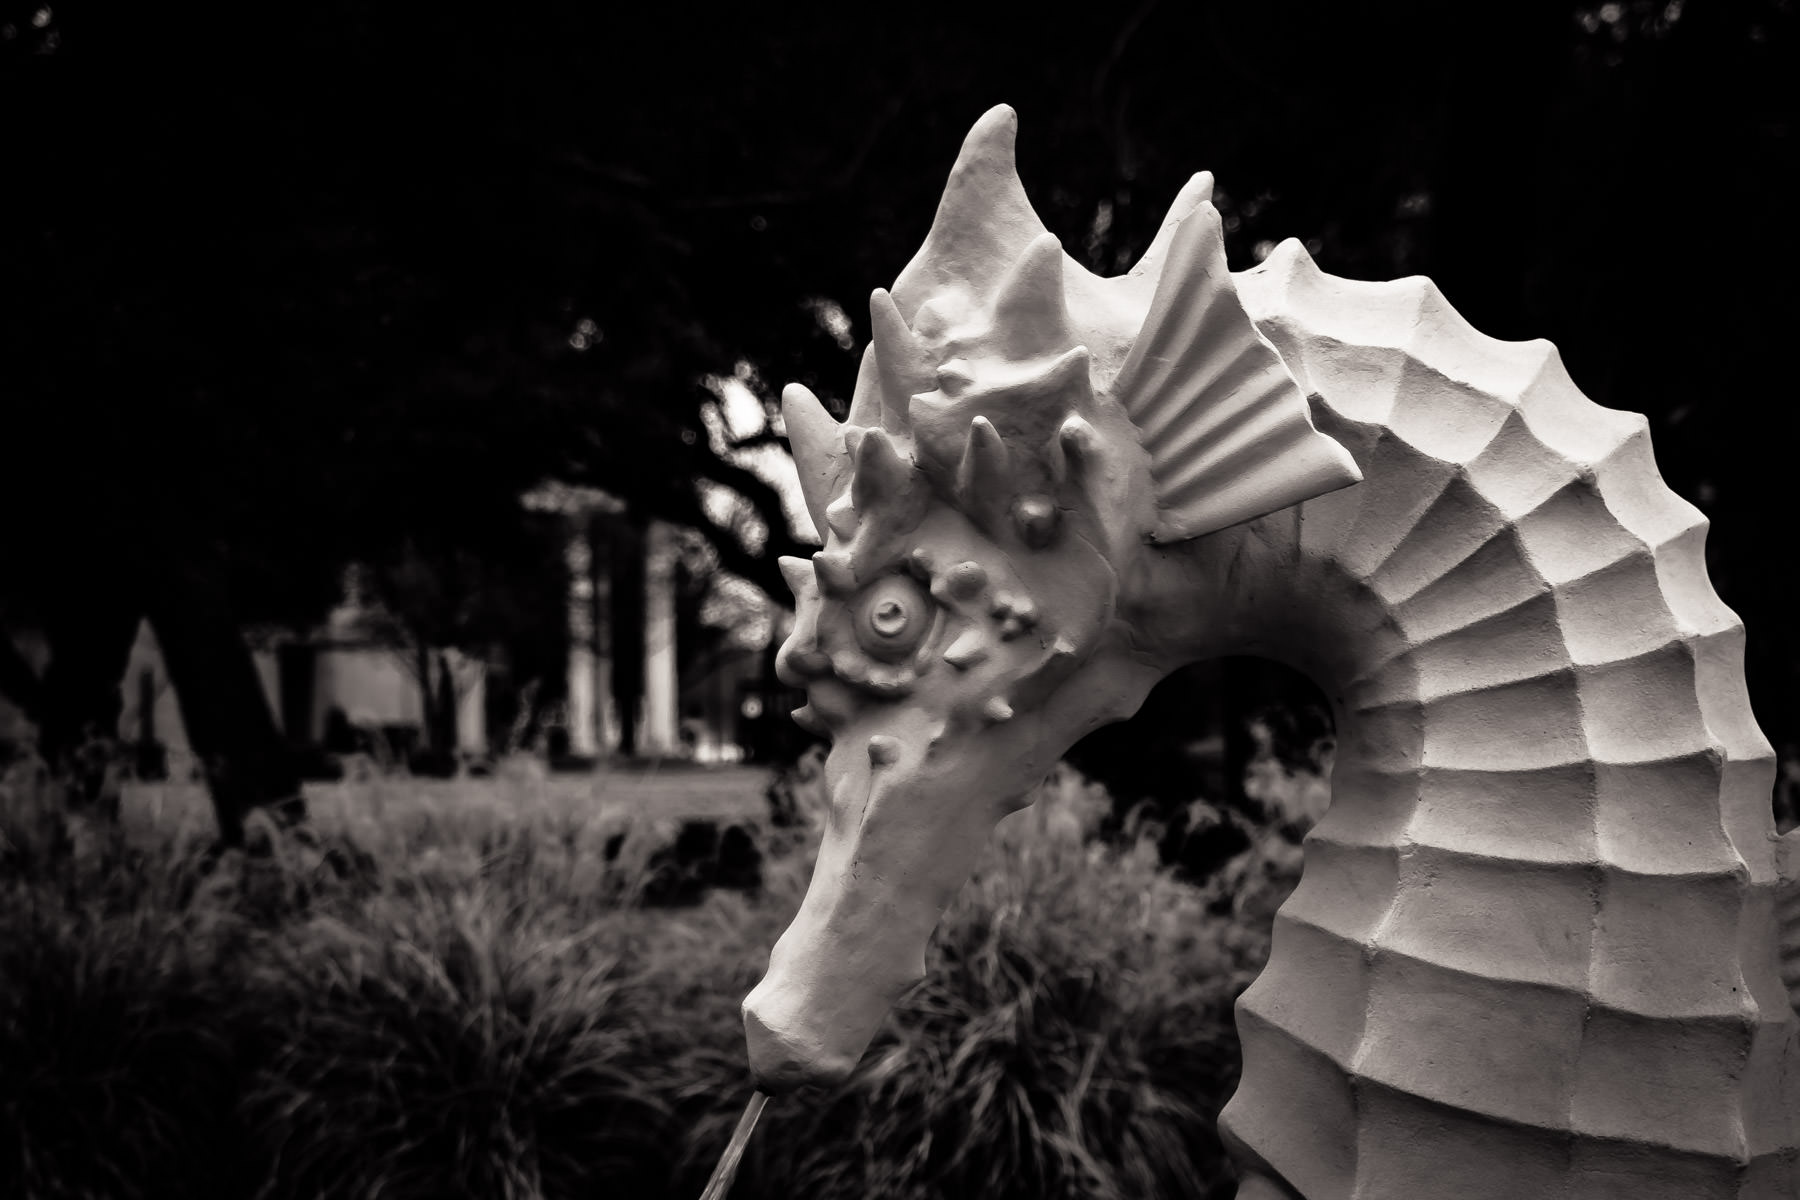 A statue of a seahorse outside the Children's Aquarium at Fair Park, Dallas, Texas.